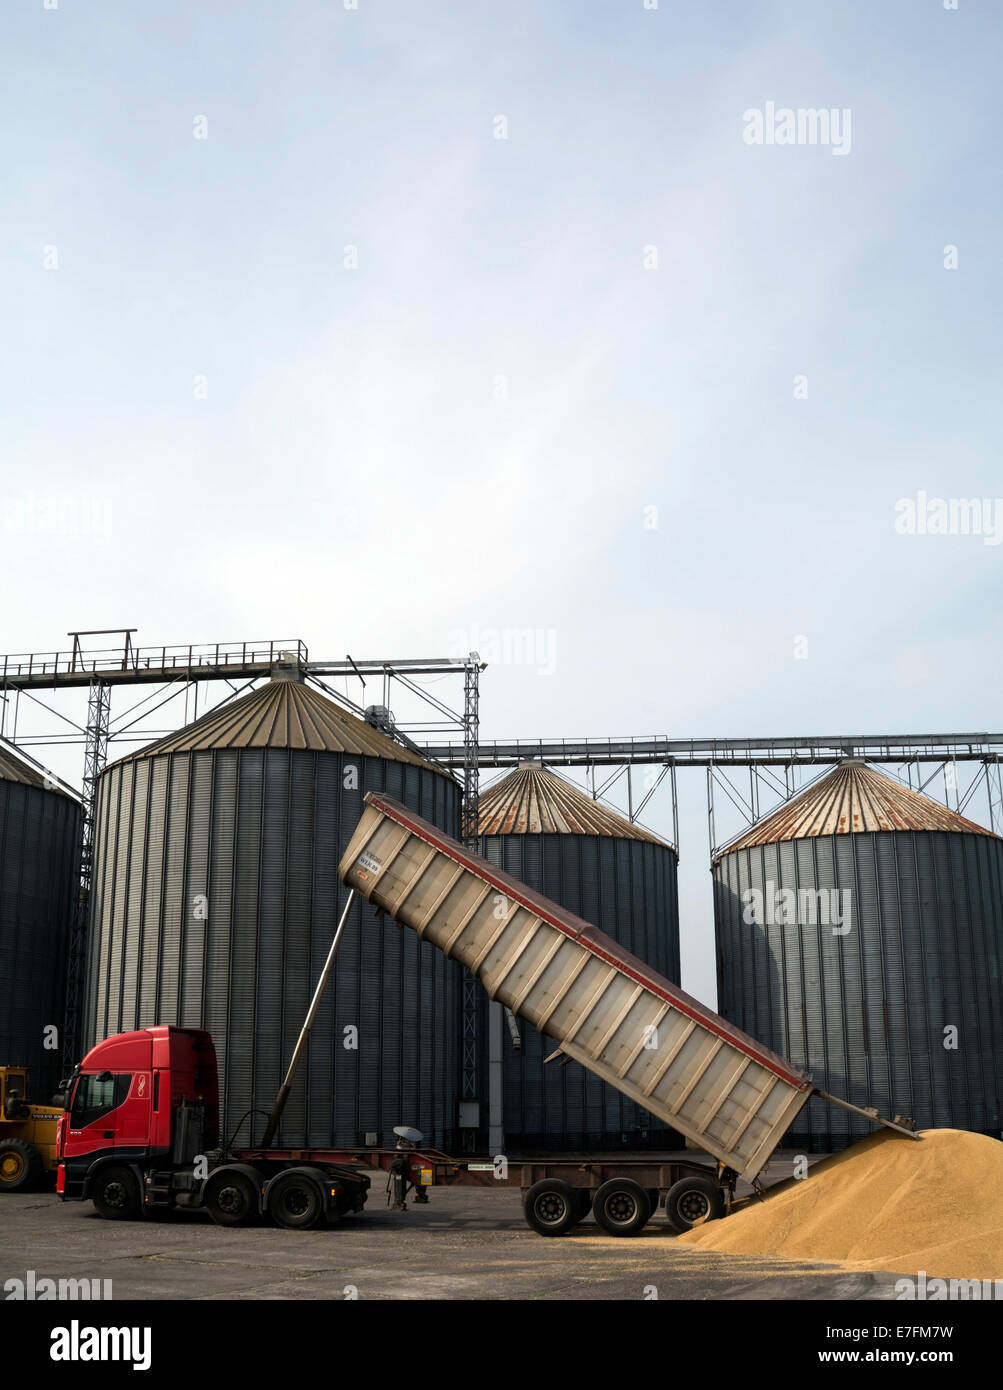 A massive tipper truck delivers grain for storage and processing, It is dumped outside until it can be moved into - Stock Image